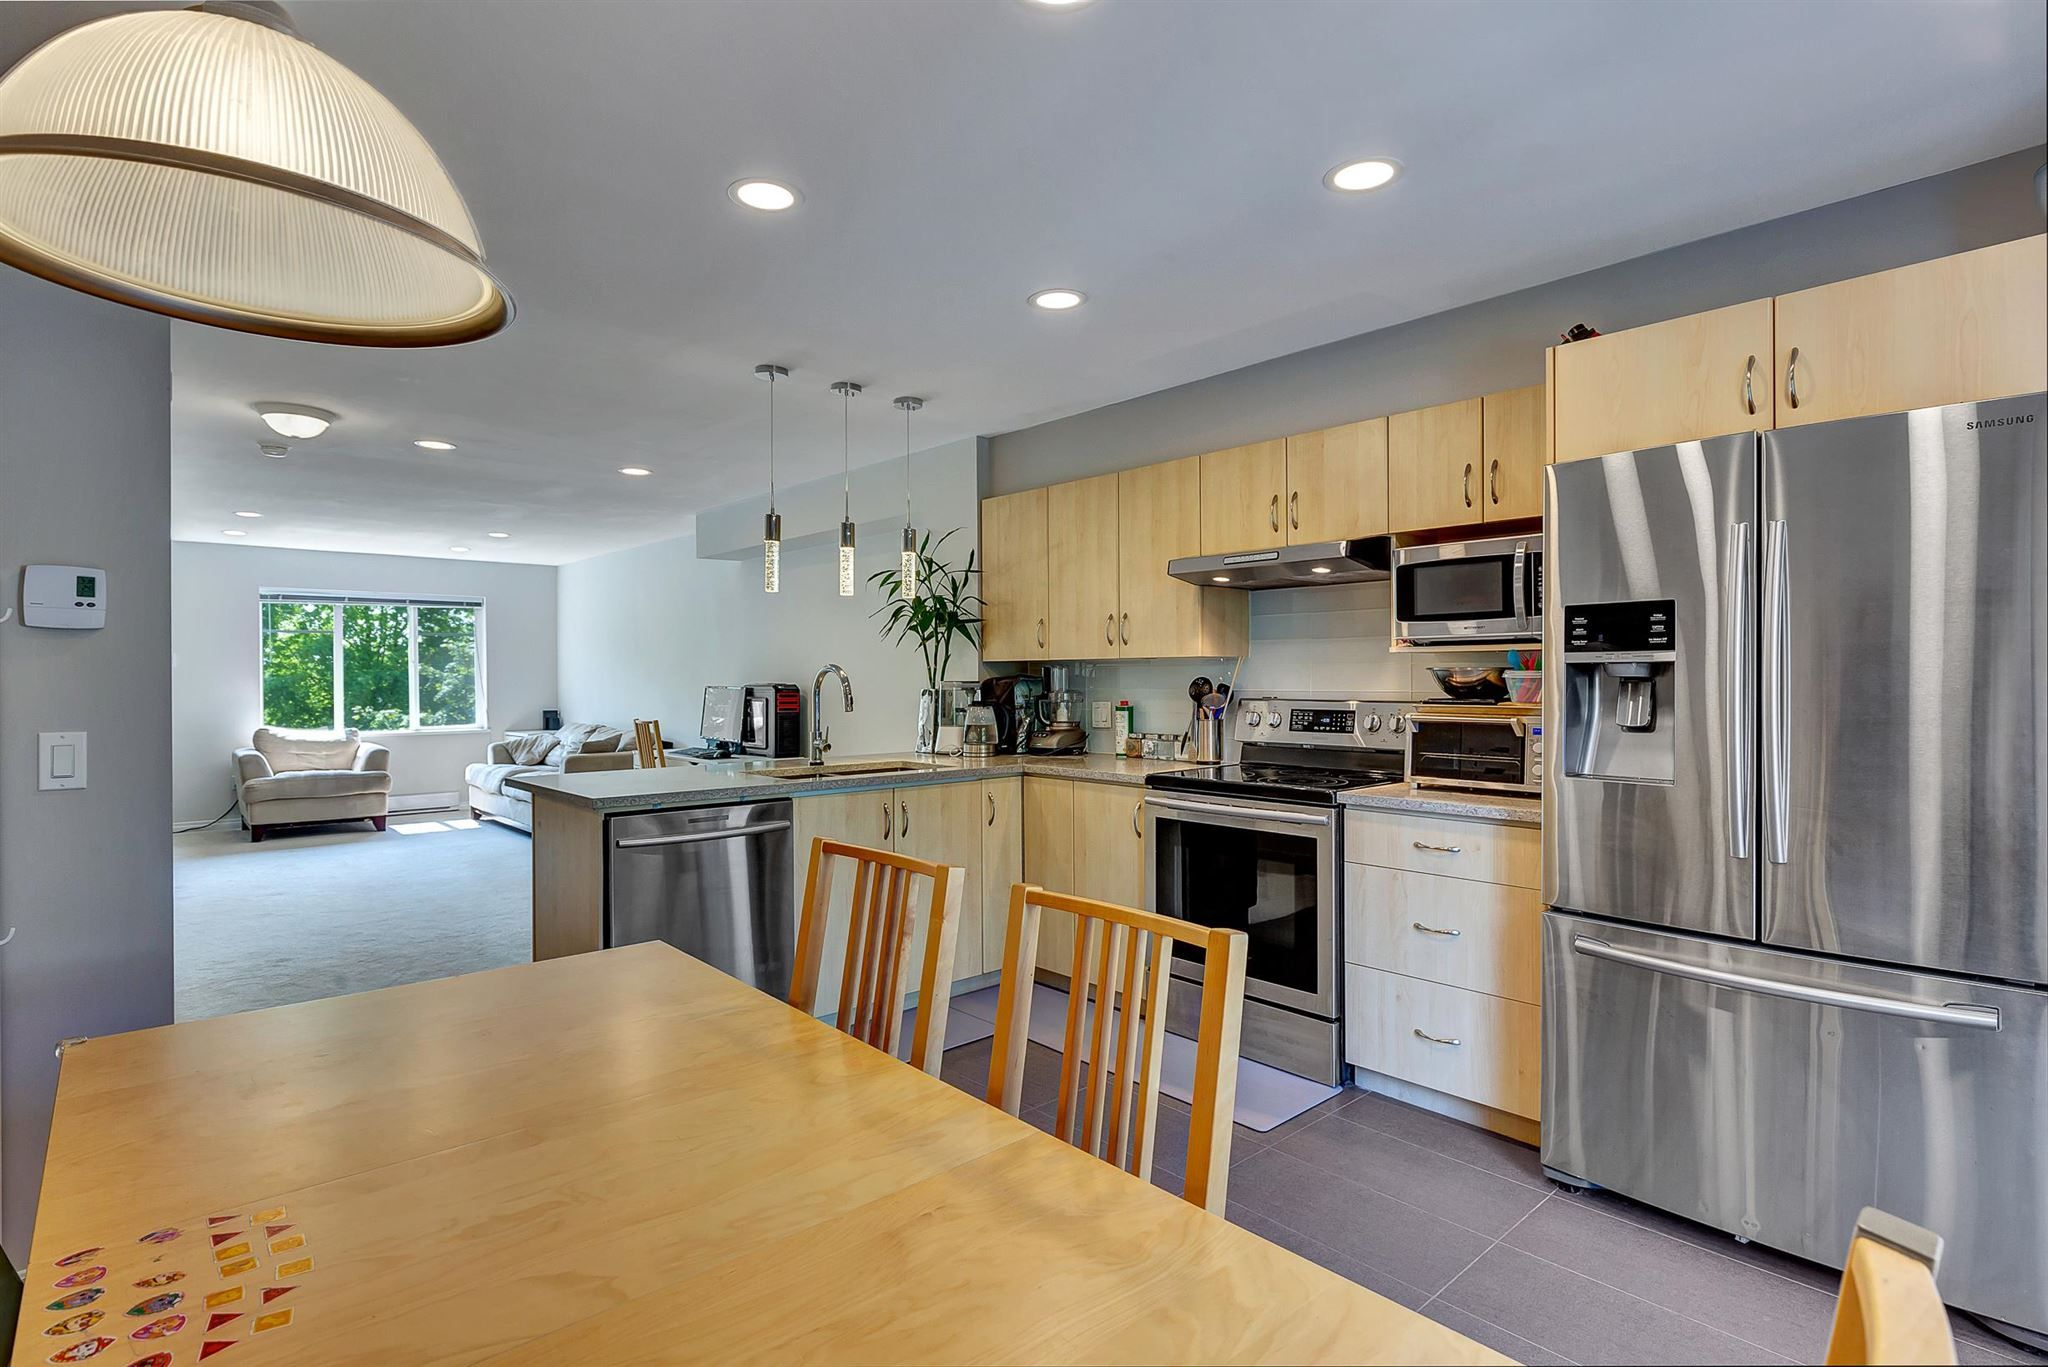 """Photo 15: Photos: 9 15871 85 Avenue in Surrey: Fleetwood Tynehead Townhouse for sale in """"Huckleberry"""" : MLS®# R2606668"""